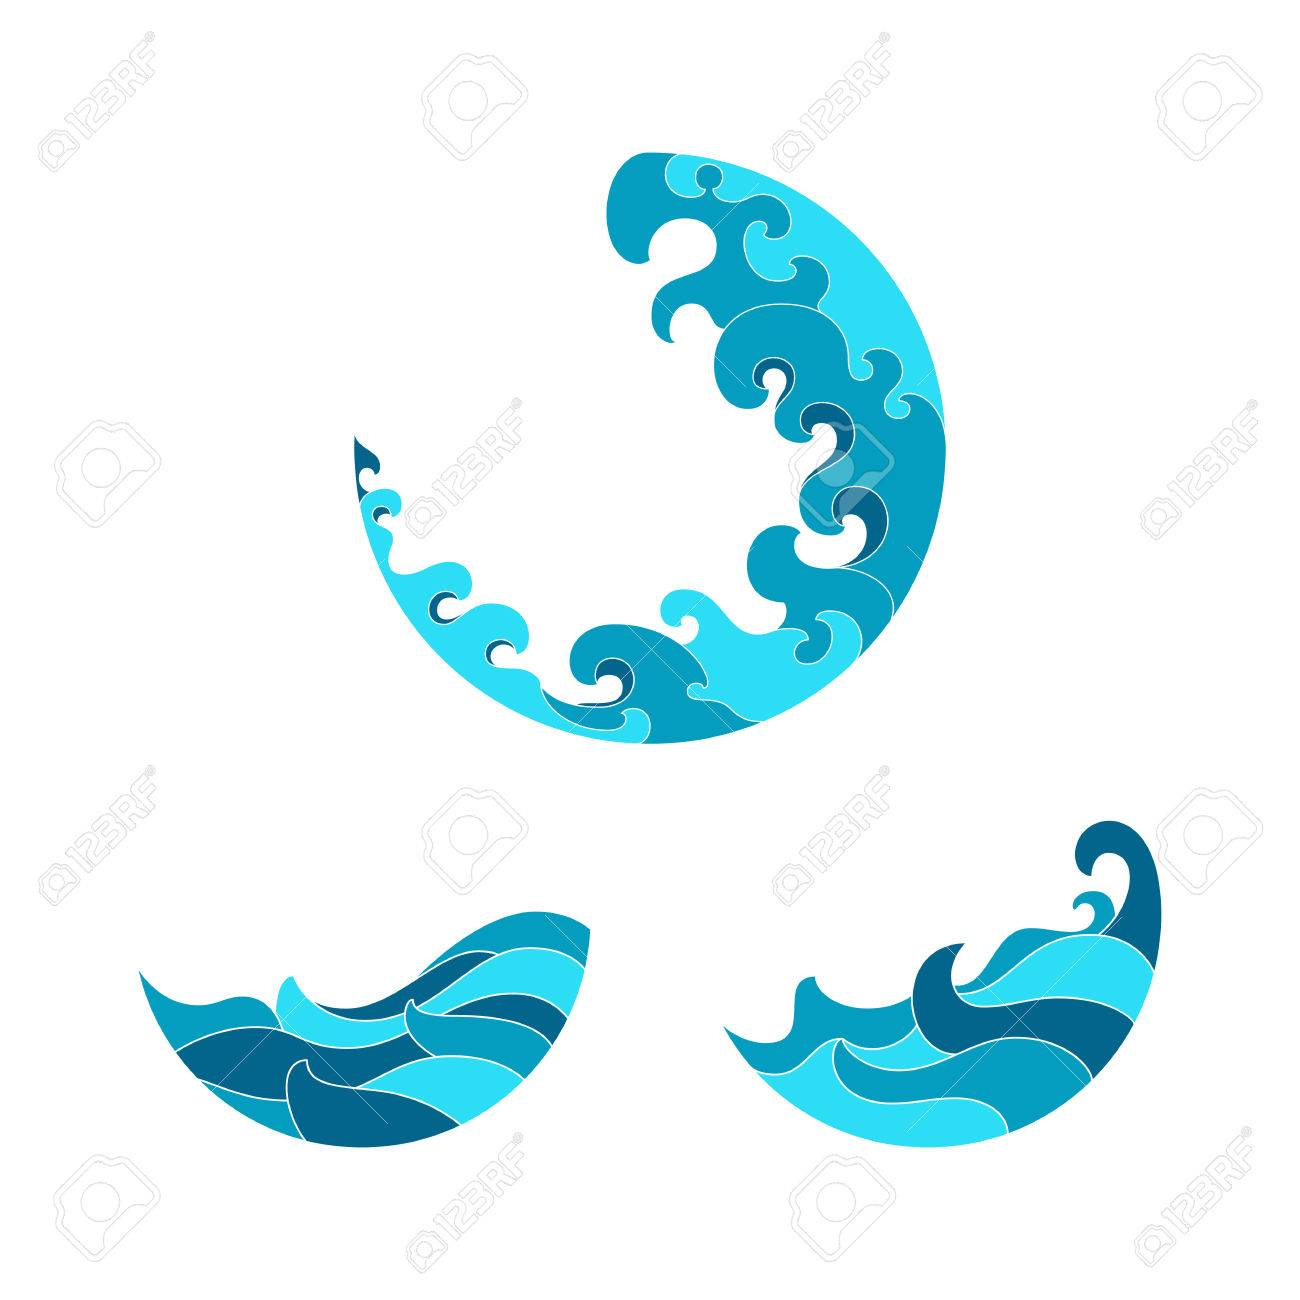 Ocean waves set isolated on white background wave symbols set ocean waves set isolated on white background wave symbols set for design blue sea biocorpaavc Choice Image